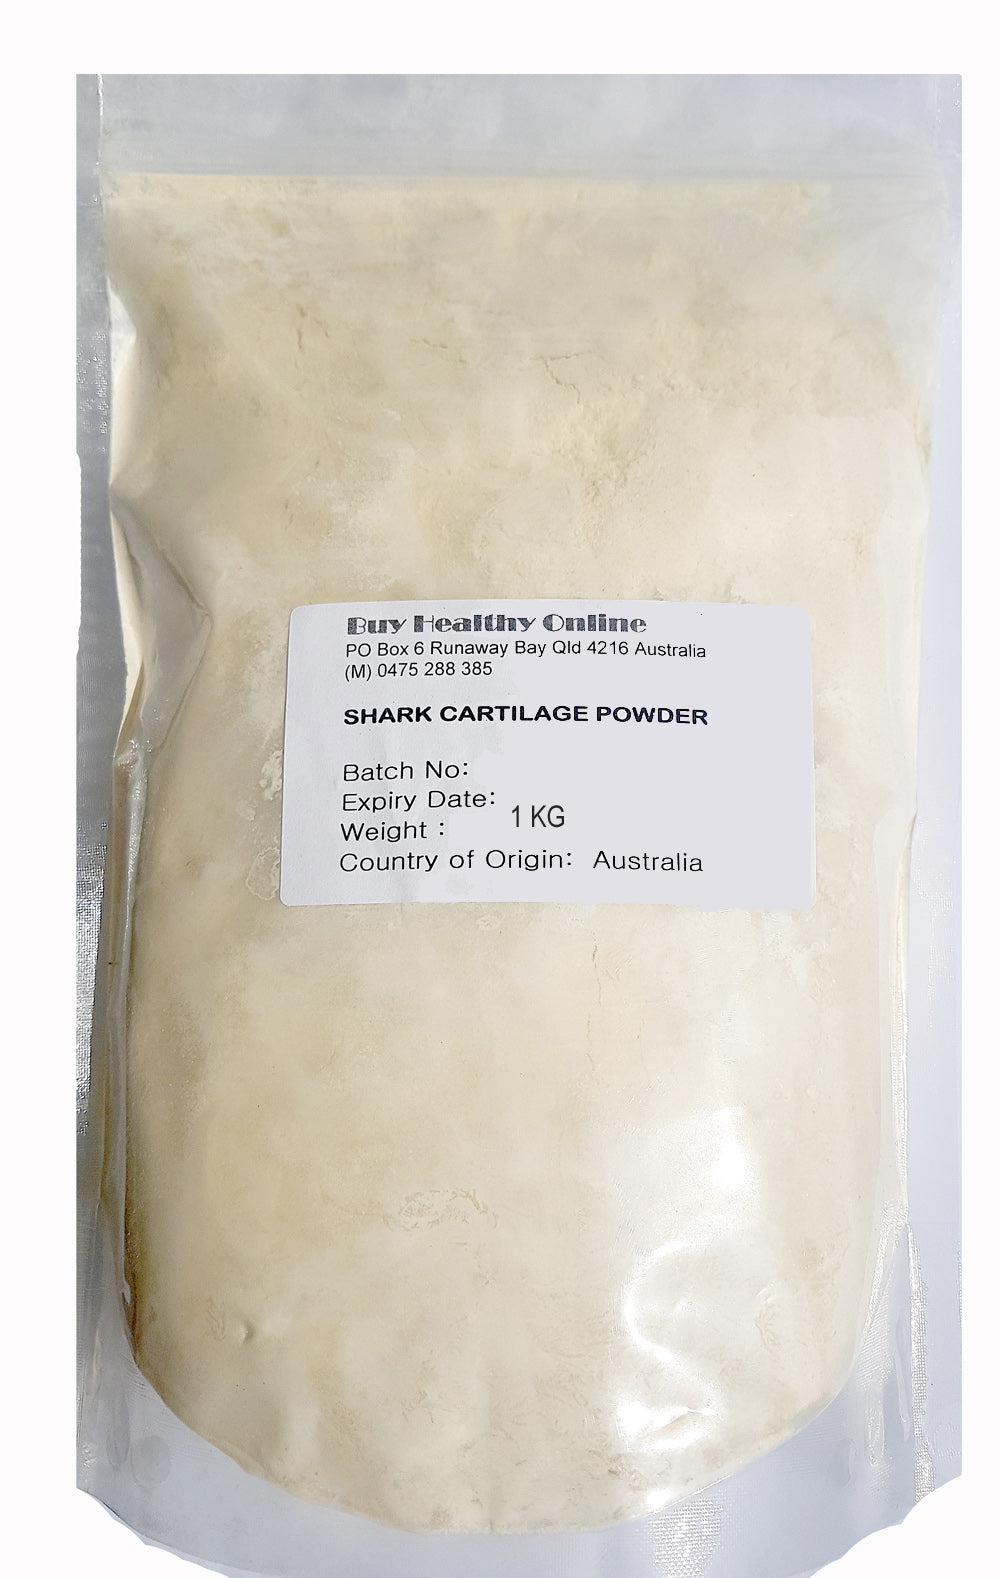 Shark Cartilage Powder 1kg BULK Australian Made